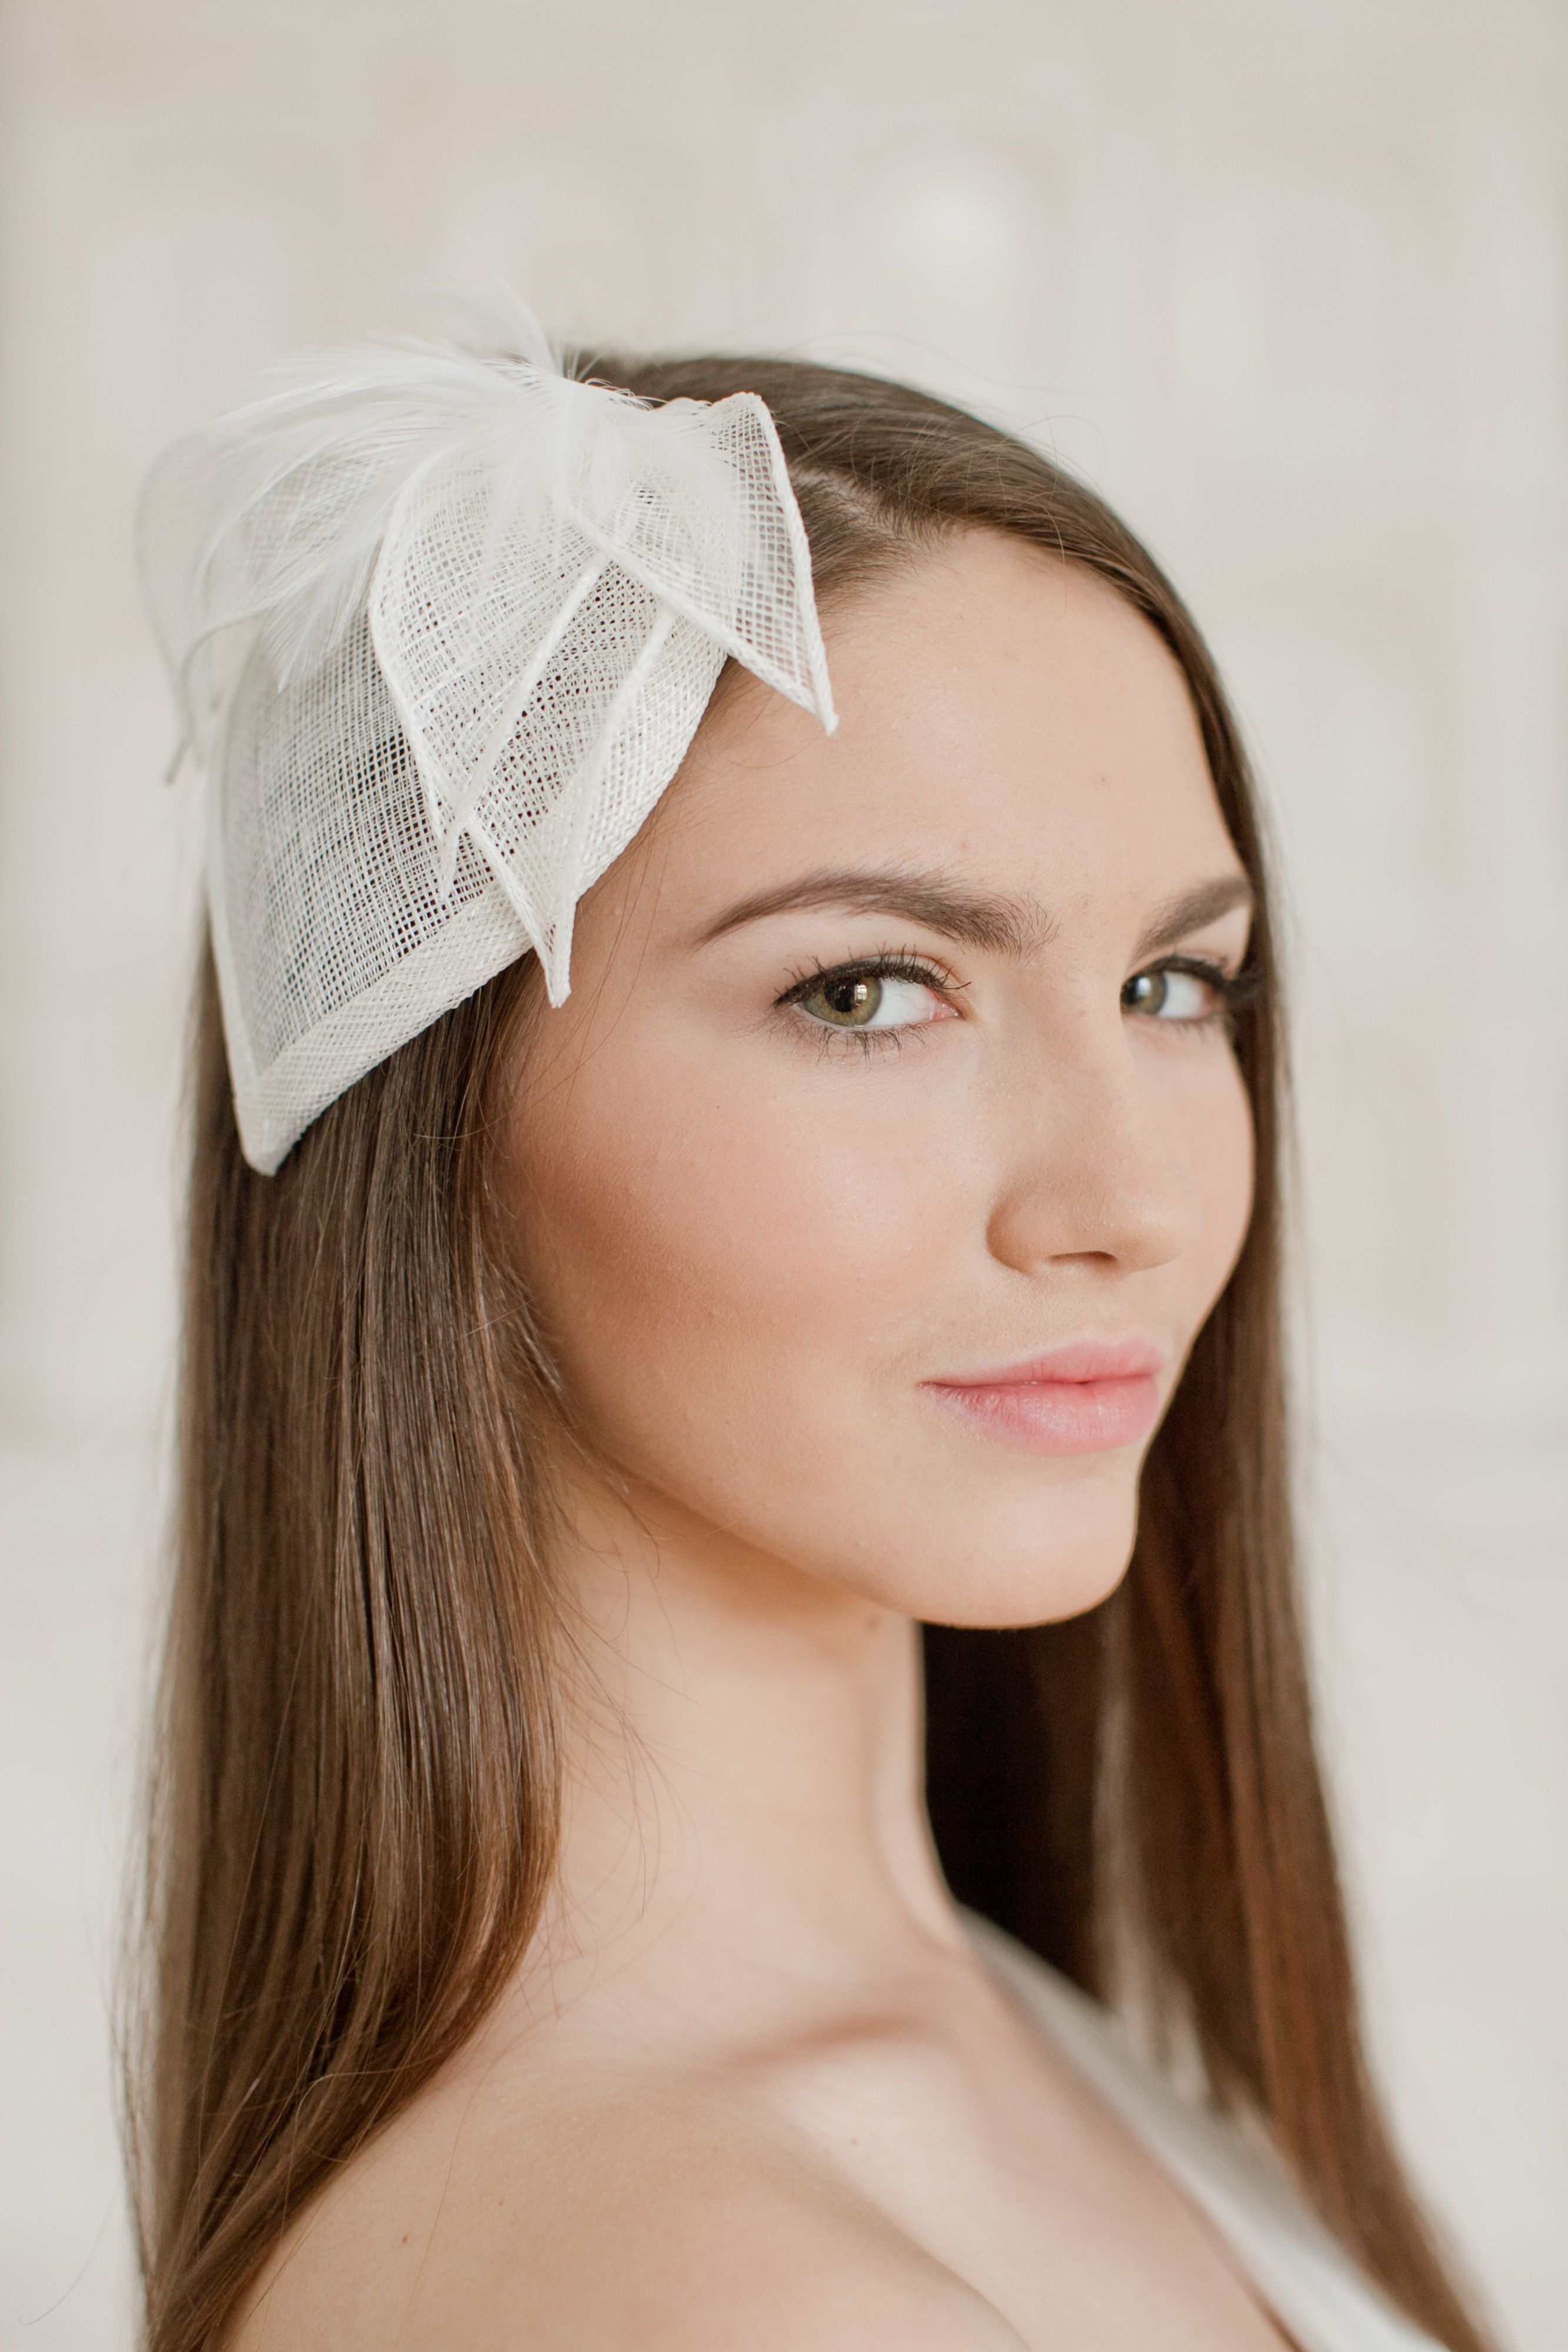 The Bridal Hat Is Completely Hand Made I Have Blocked Layers Of Sinamay Wired And Trimmed It With Fea Bride Headpiece Bridal Veils And Headpieces Bridal Hat